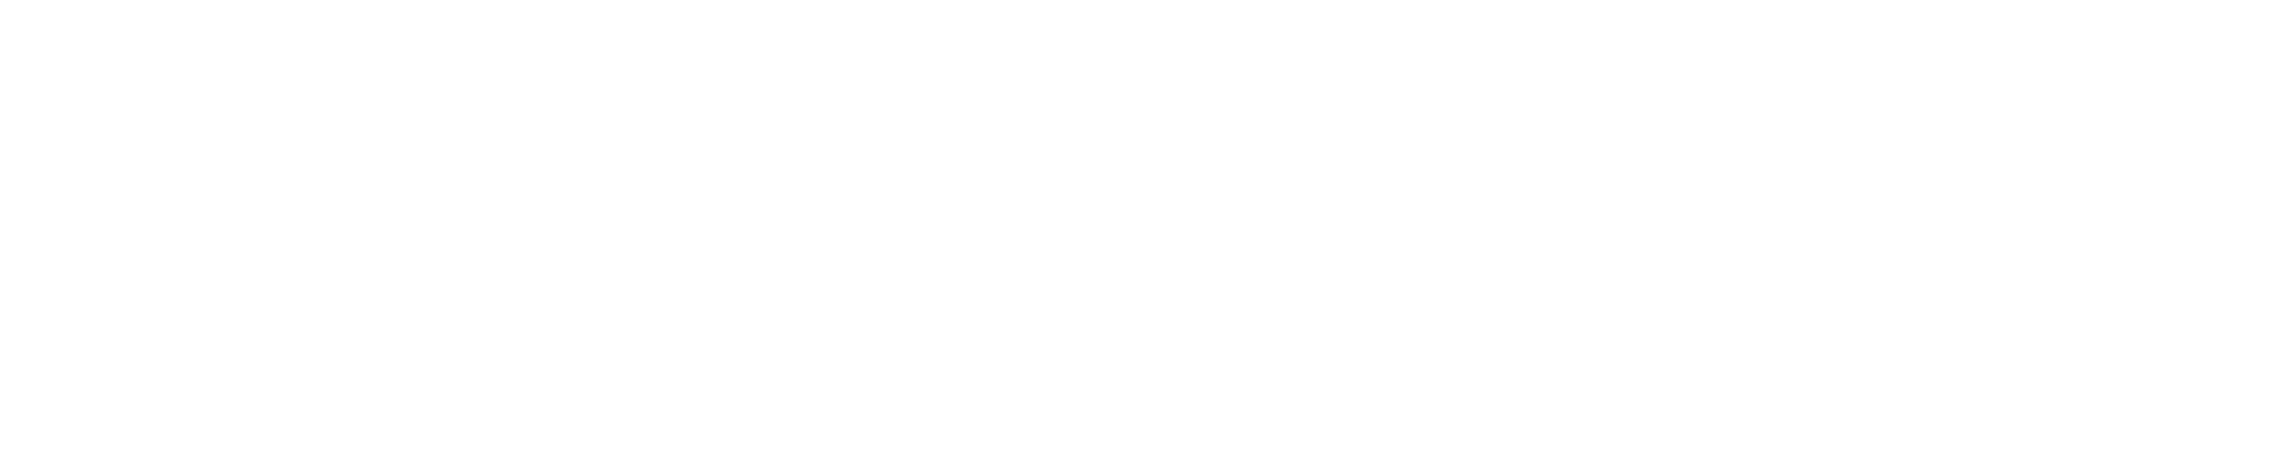 Prime1Studio